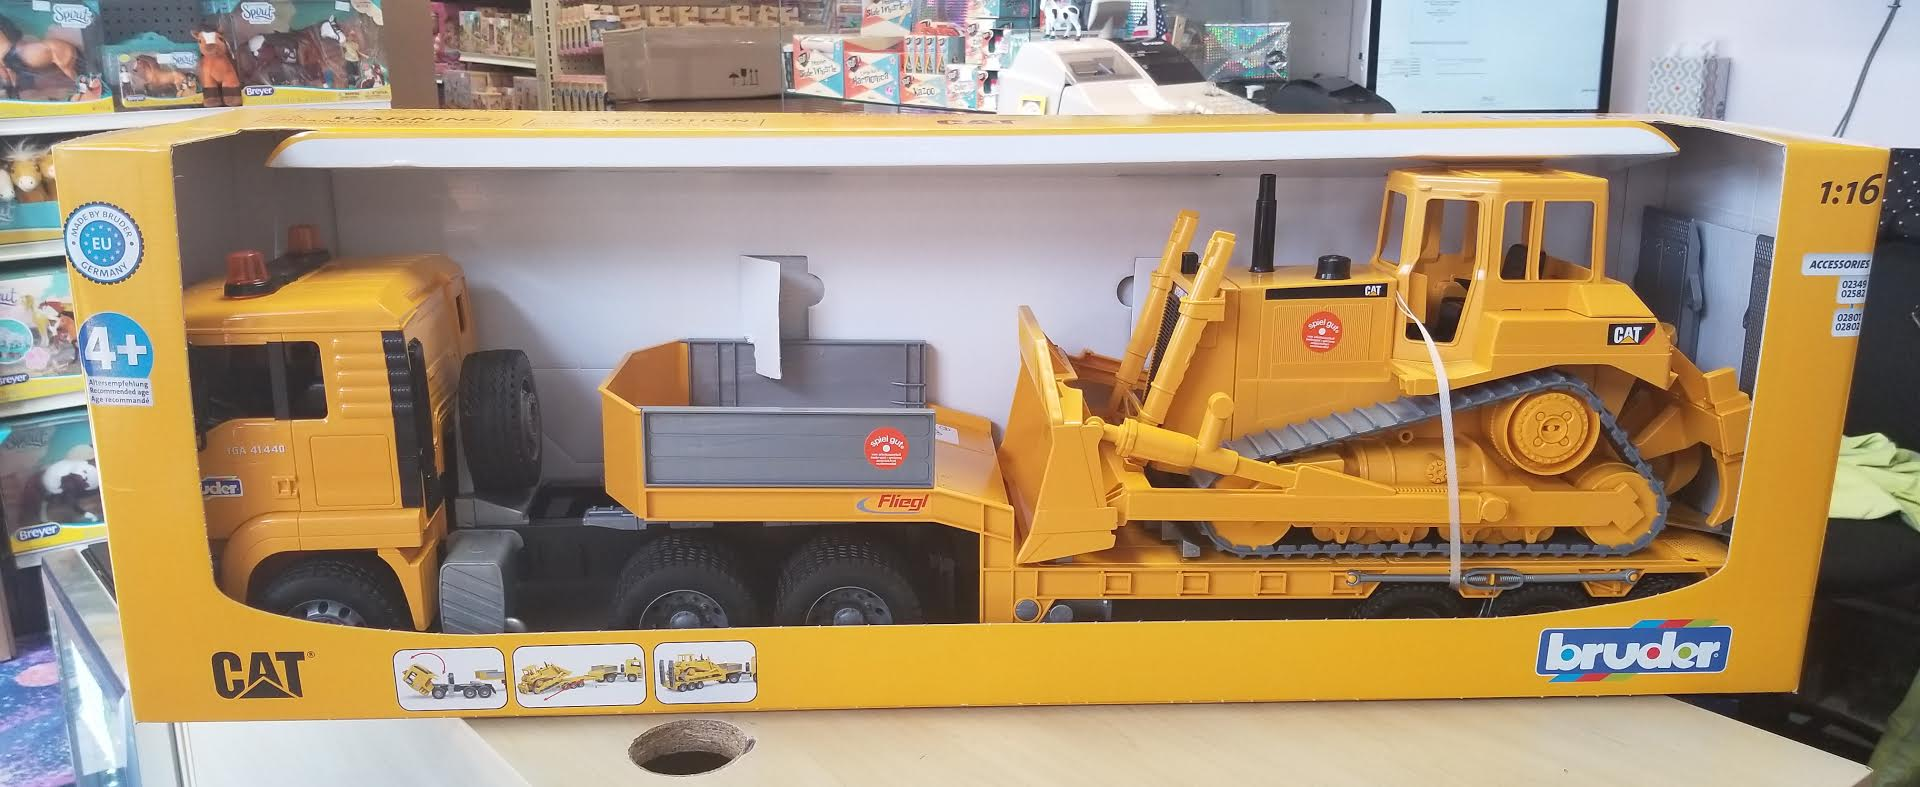 Bruder #02778 MAN TGA Loader Truck with CAT Bulldozer - New Factory Sealed #2778